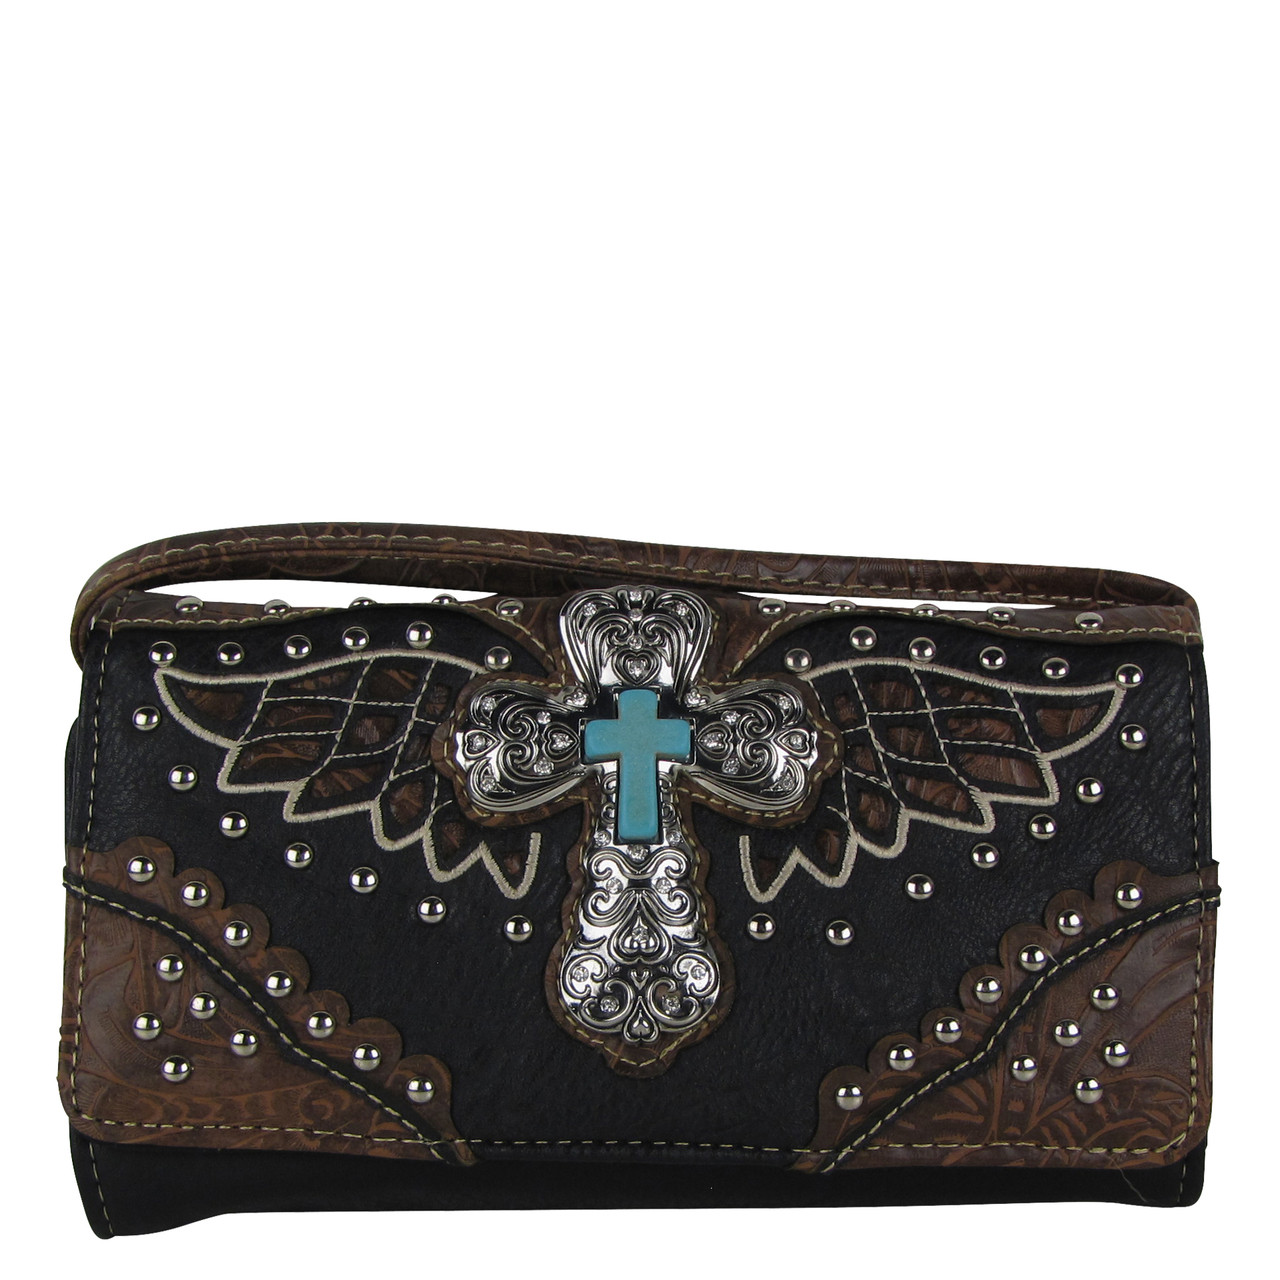 BLACK WESTERN CROSS WITH WINGS LOOK CLUTCH TRIFOLD WALLET CW1-1278BLK